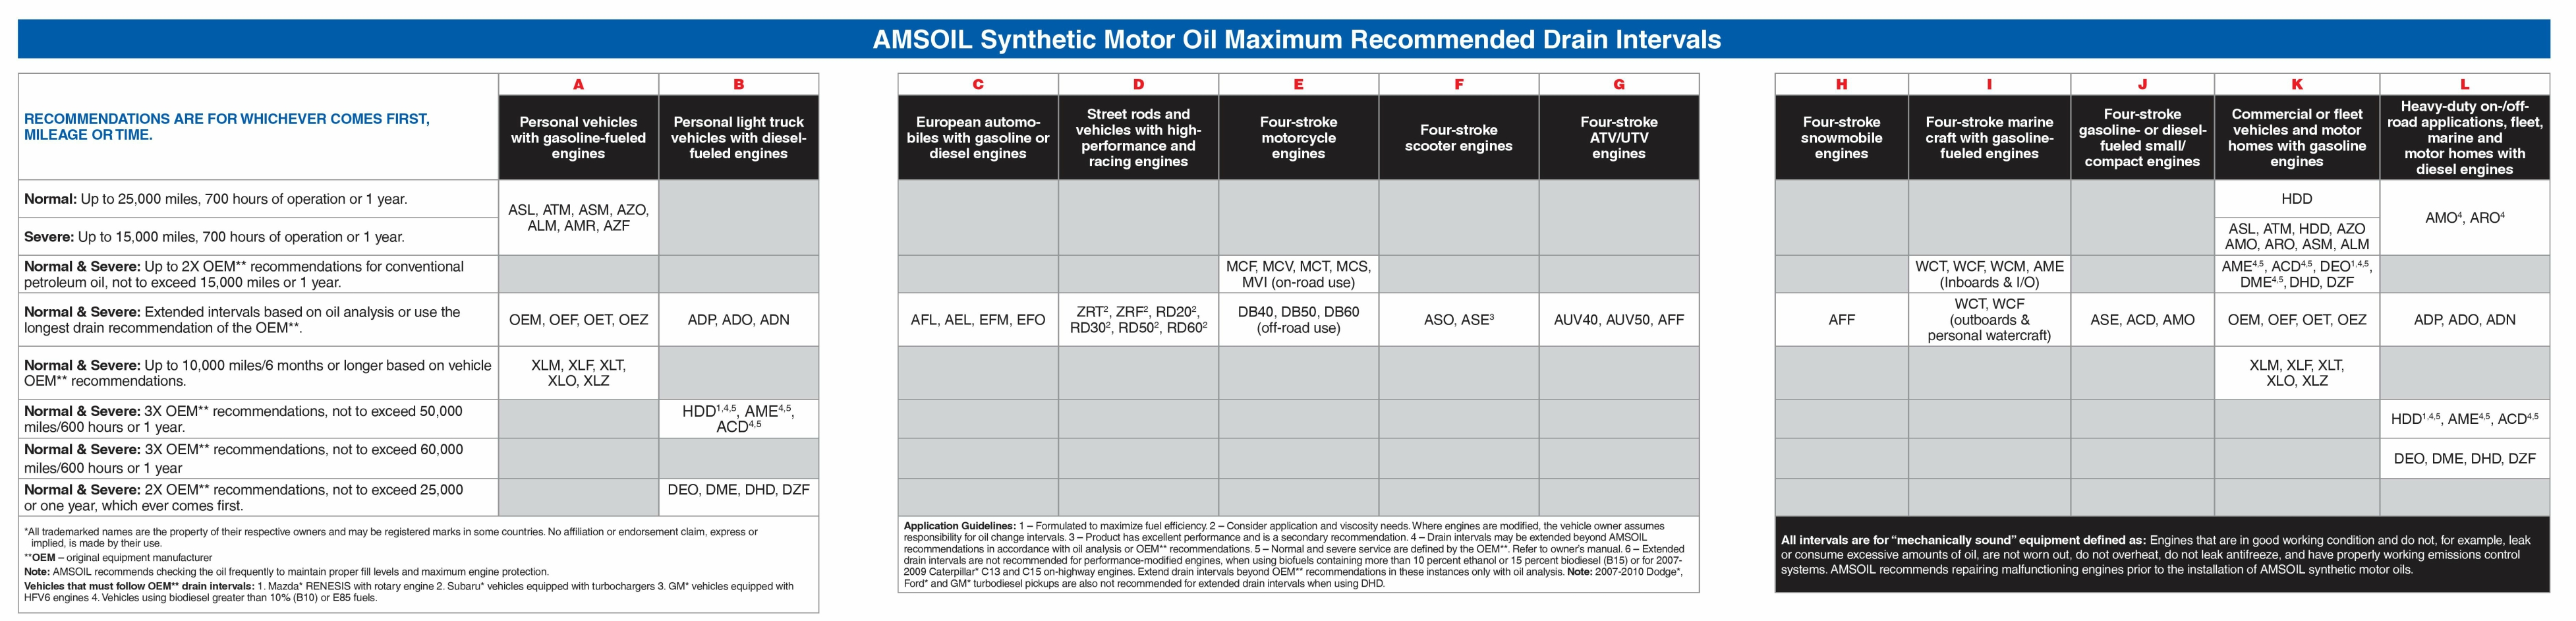 AMSOIL Synthetic Motor Oil Maximum Recommended Drain Intervals